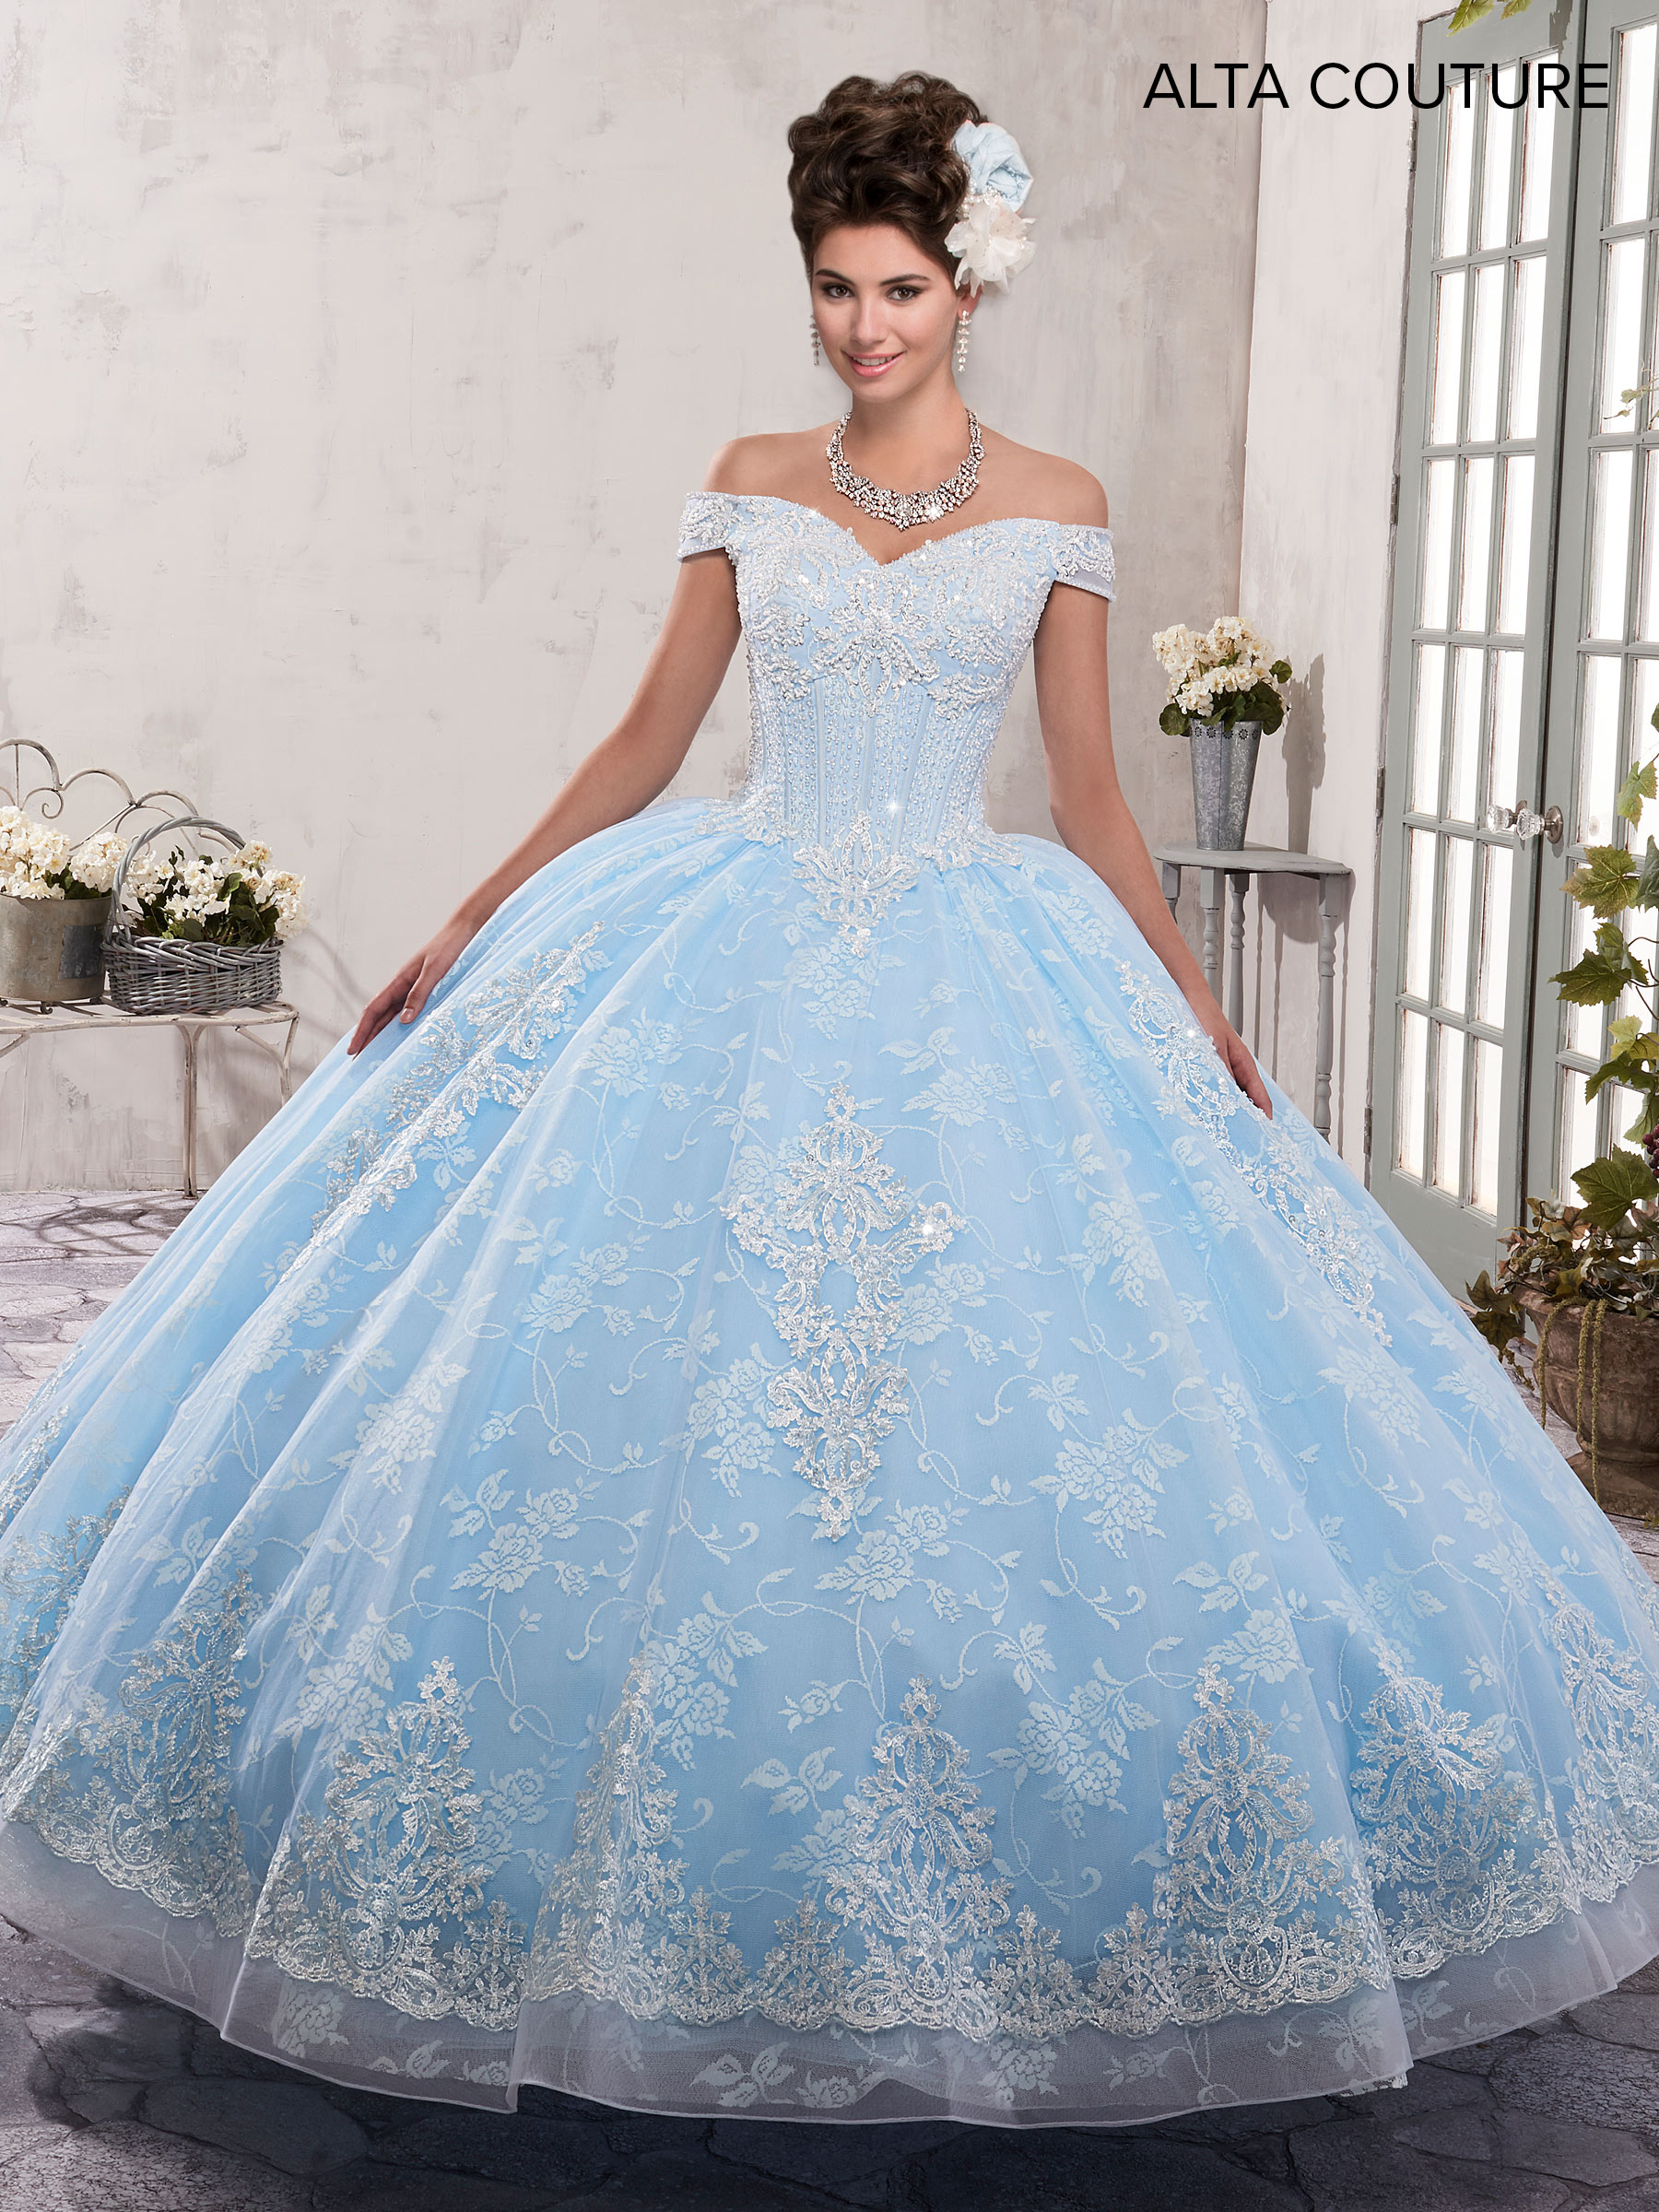 Quinceanera Couture Dresses | Alta Couture | Style - MQ3001